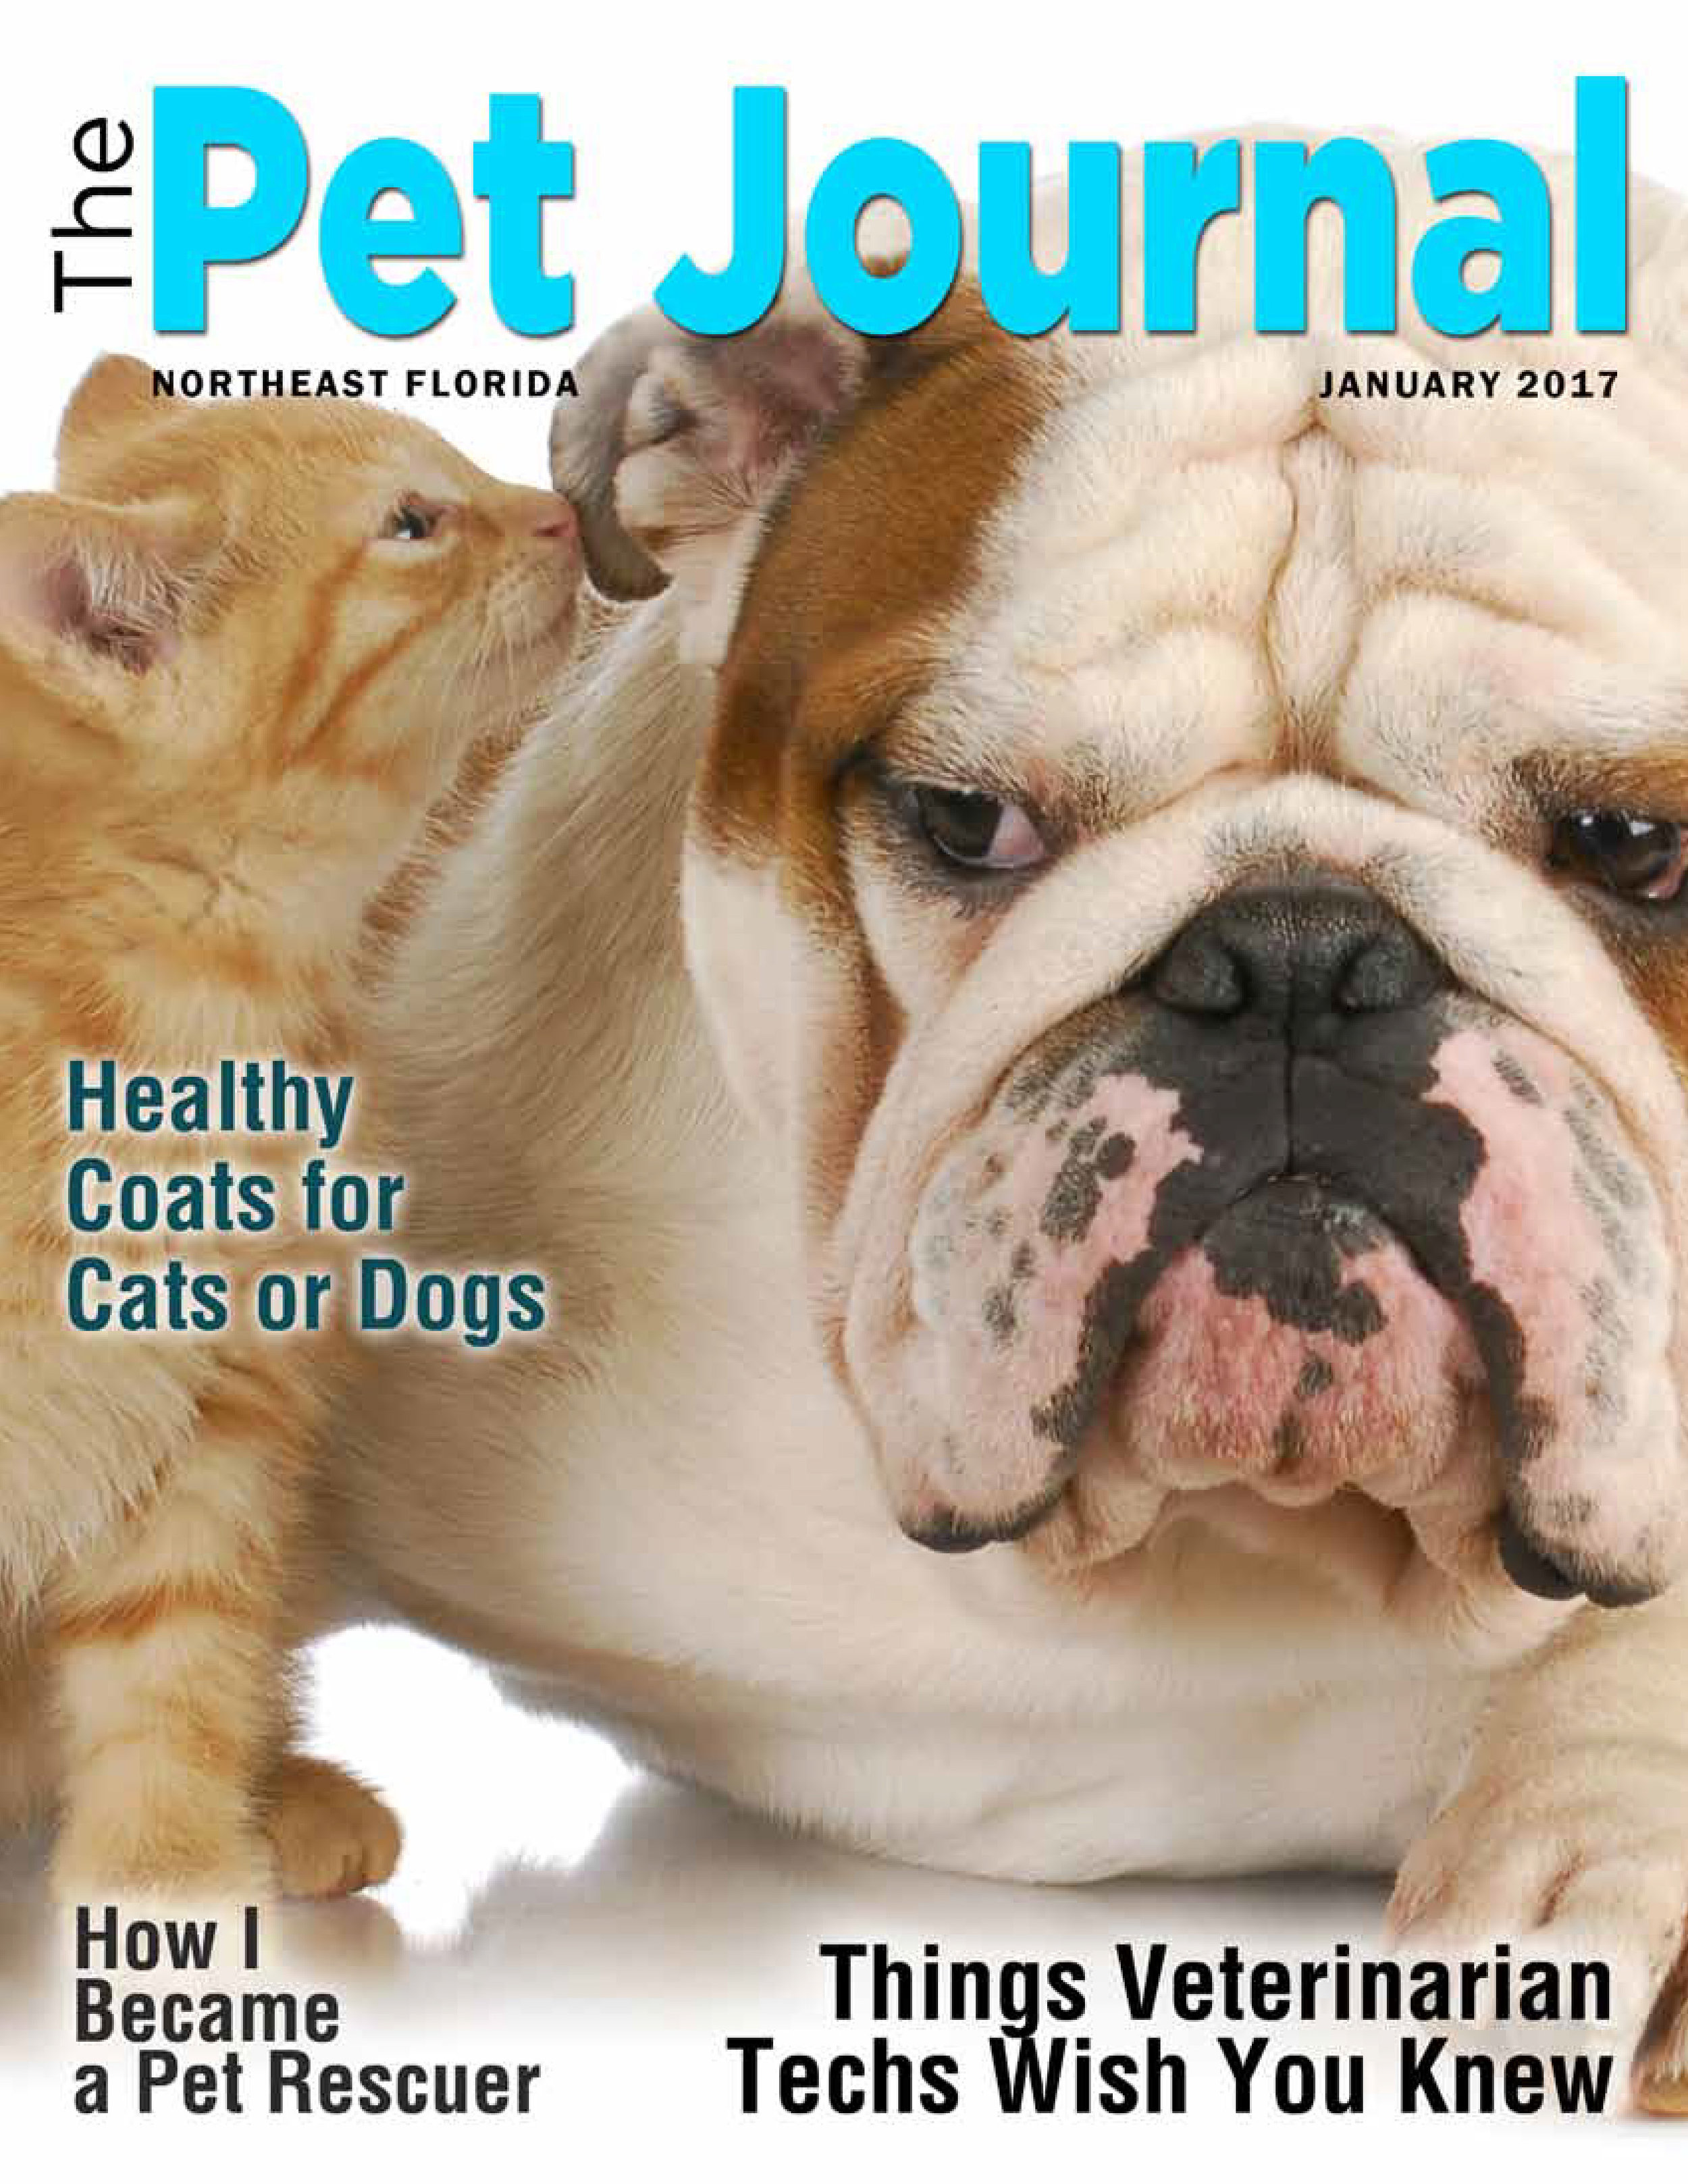 Pet Journal January 2017 Cover.jpg